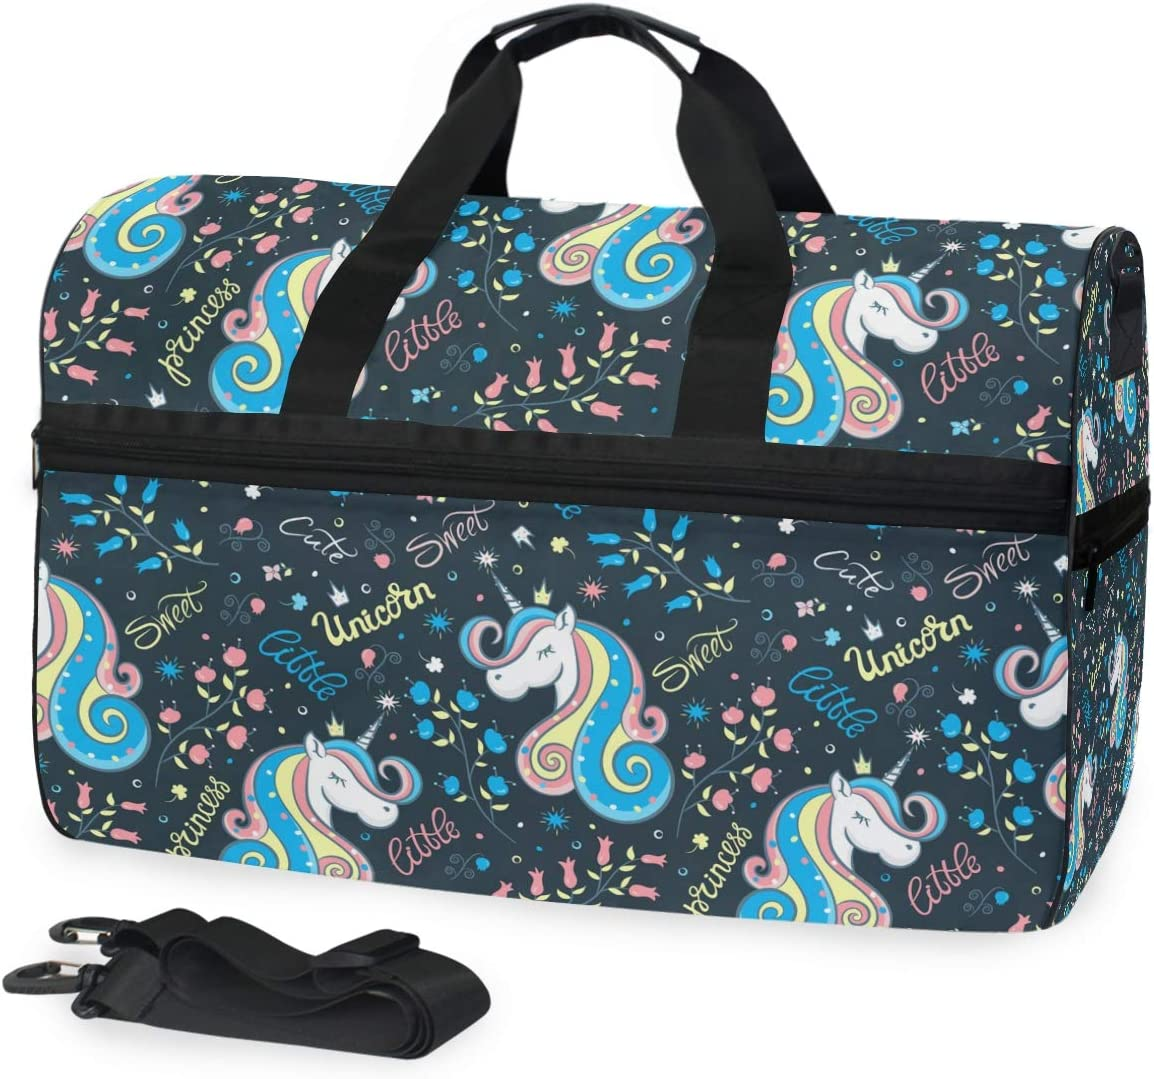 Unicorns Sports Gym Bag with Shoes Compartment Travel Duffel Bag for Men and Women